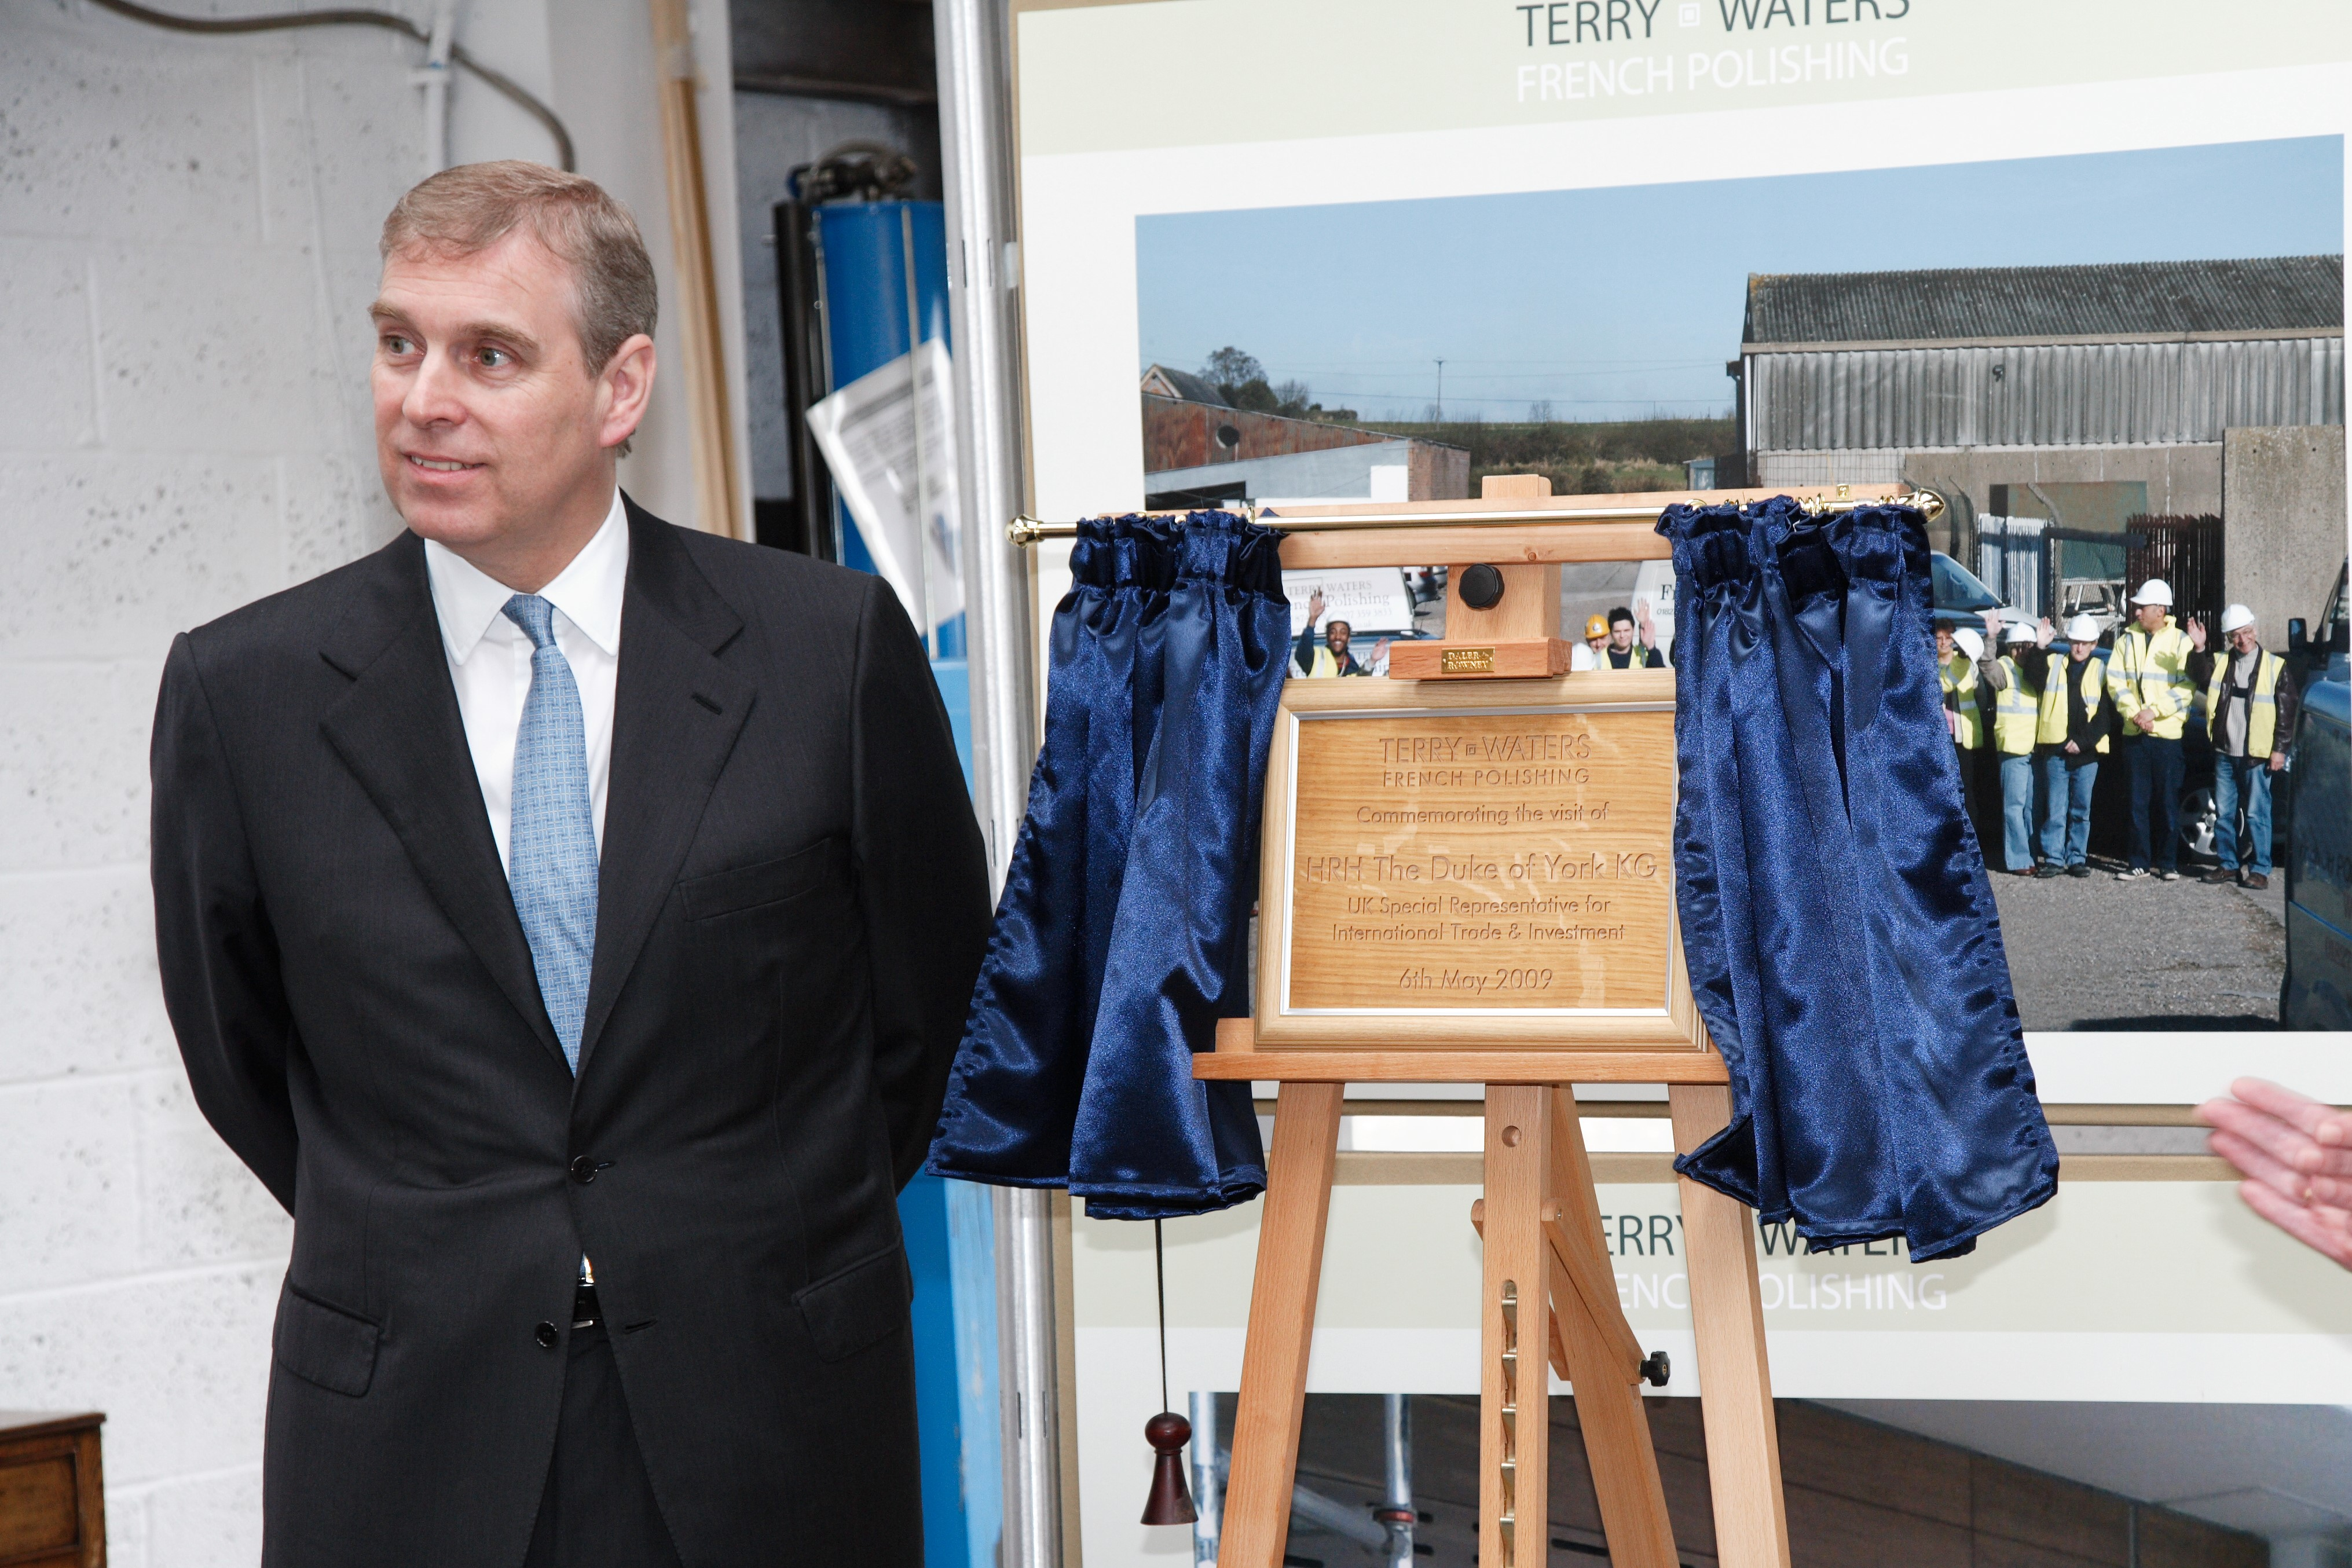 Prince Andrew visits Terry Waters French Polishing